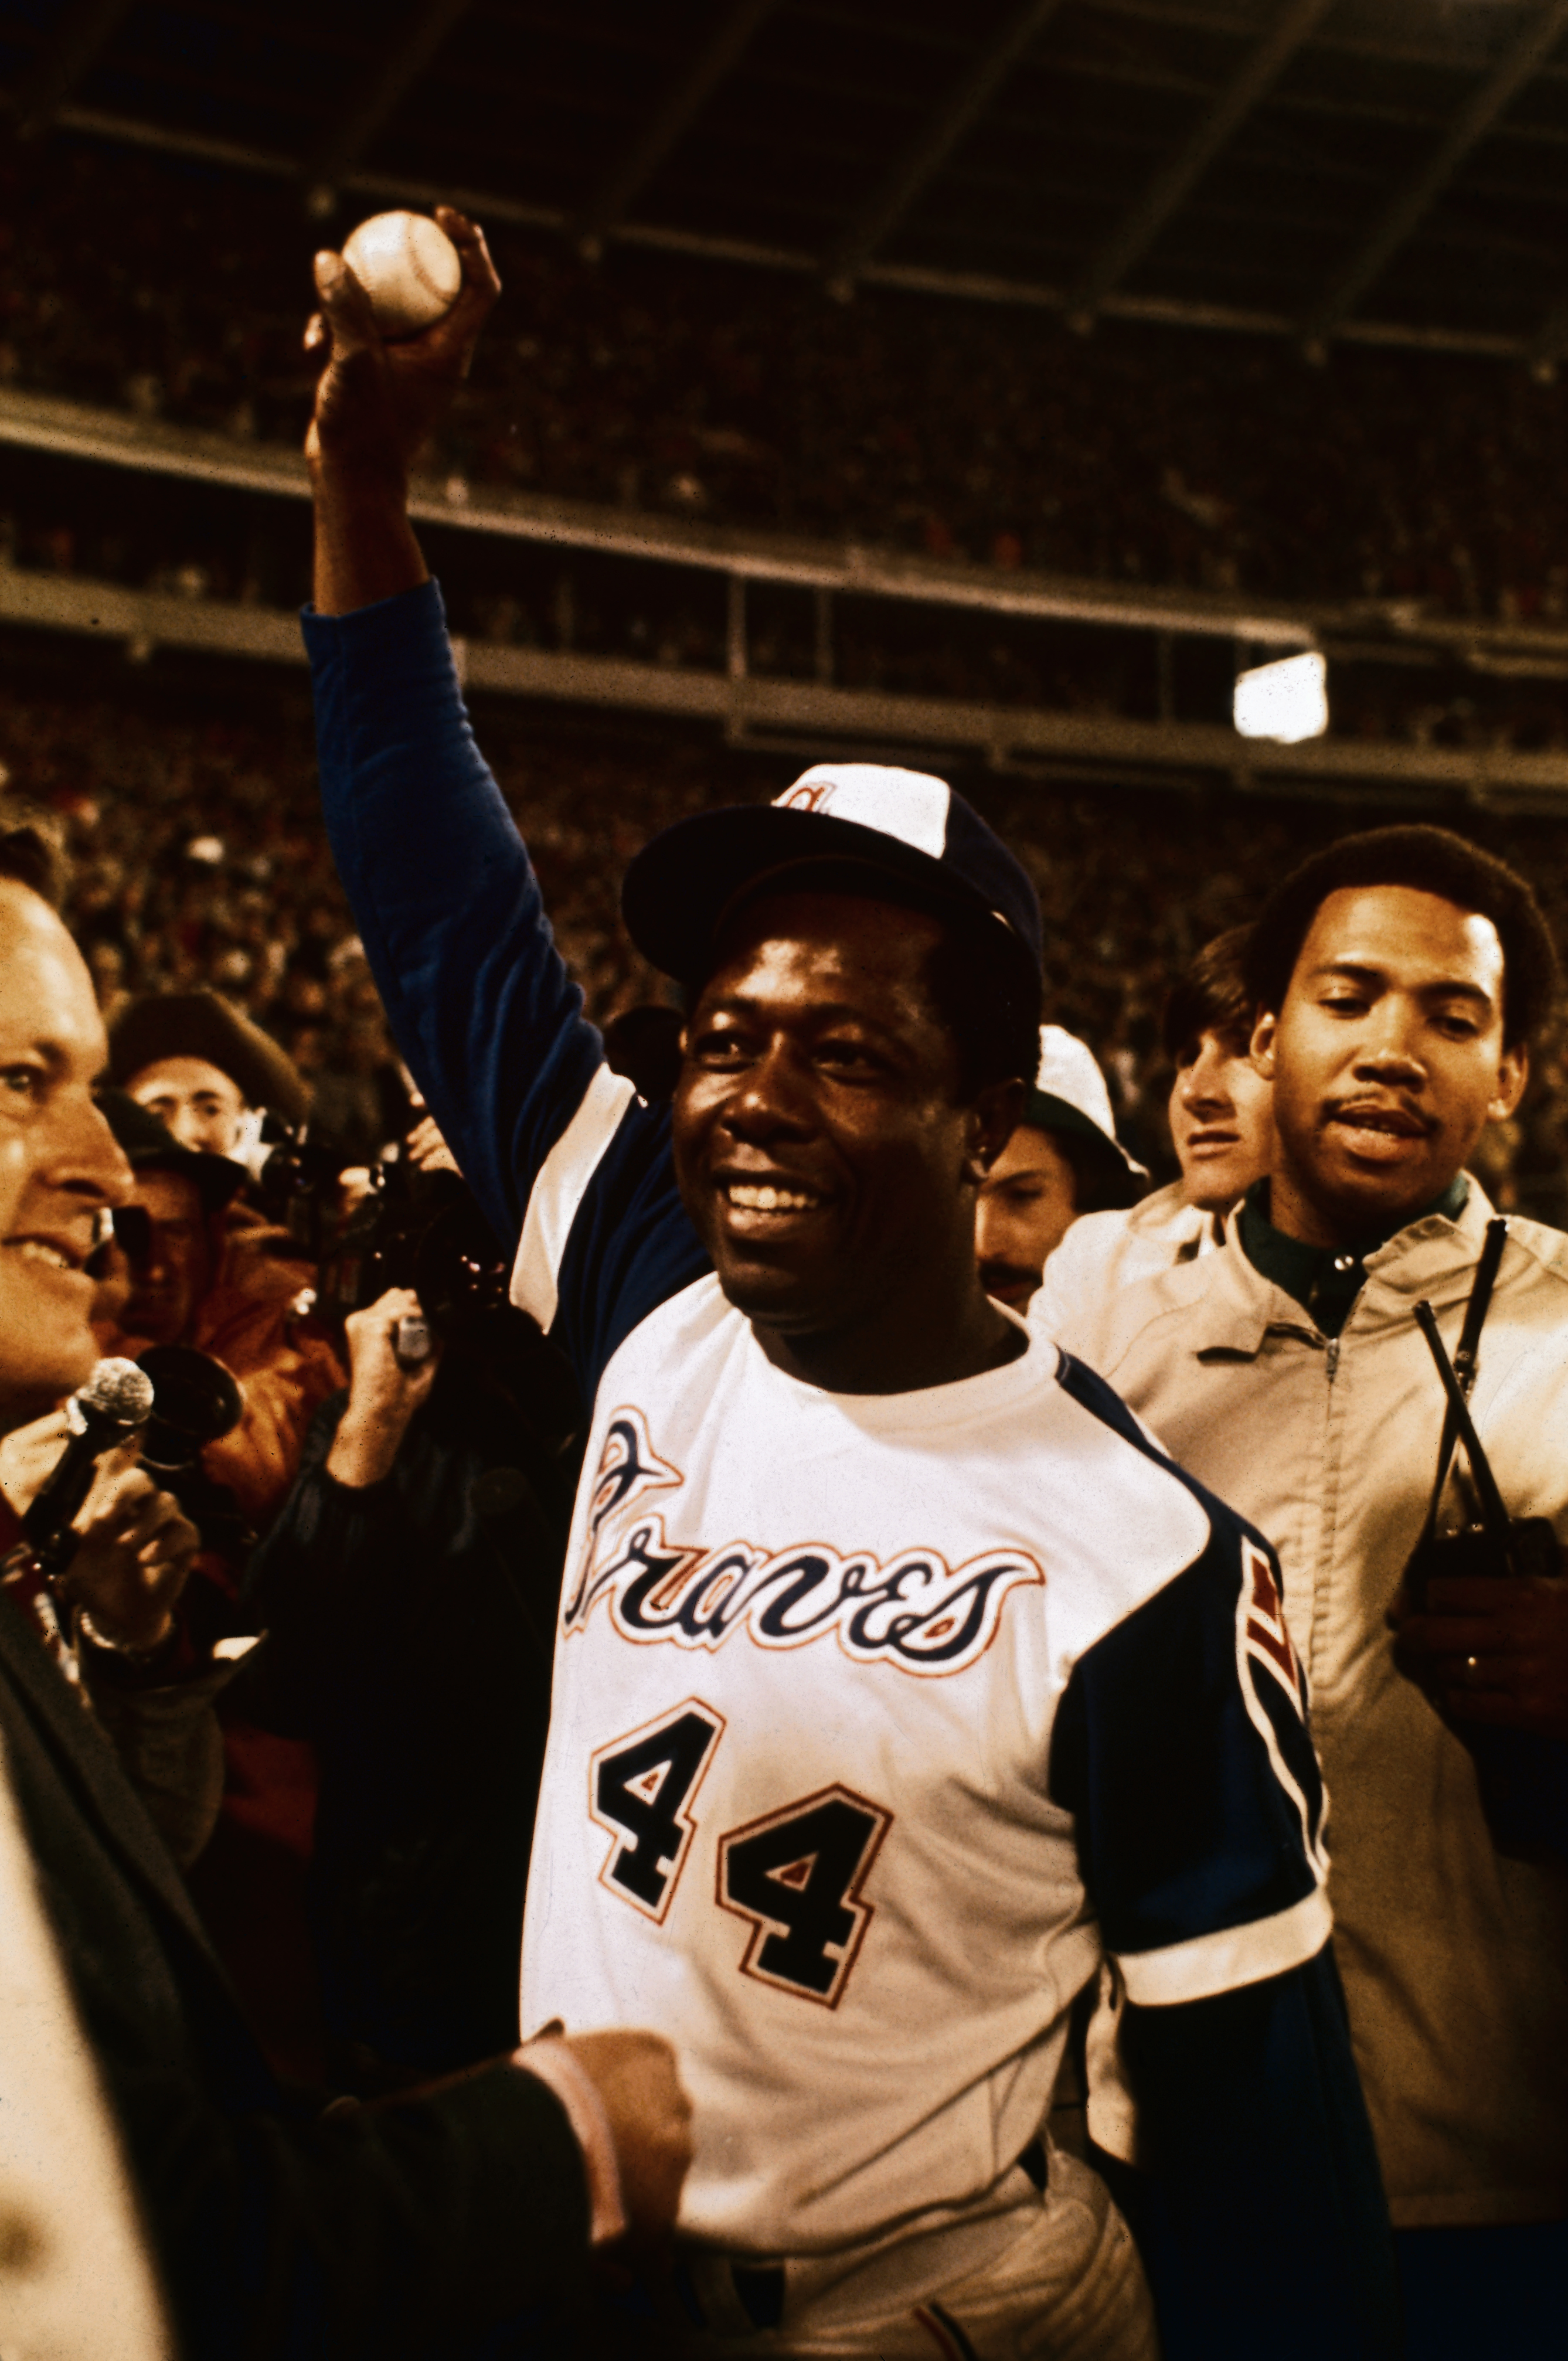 Hank Aaron Holding Baseball Hit for 715th Home Run